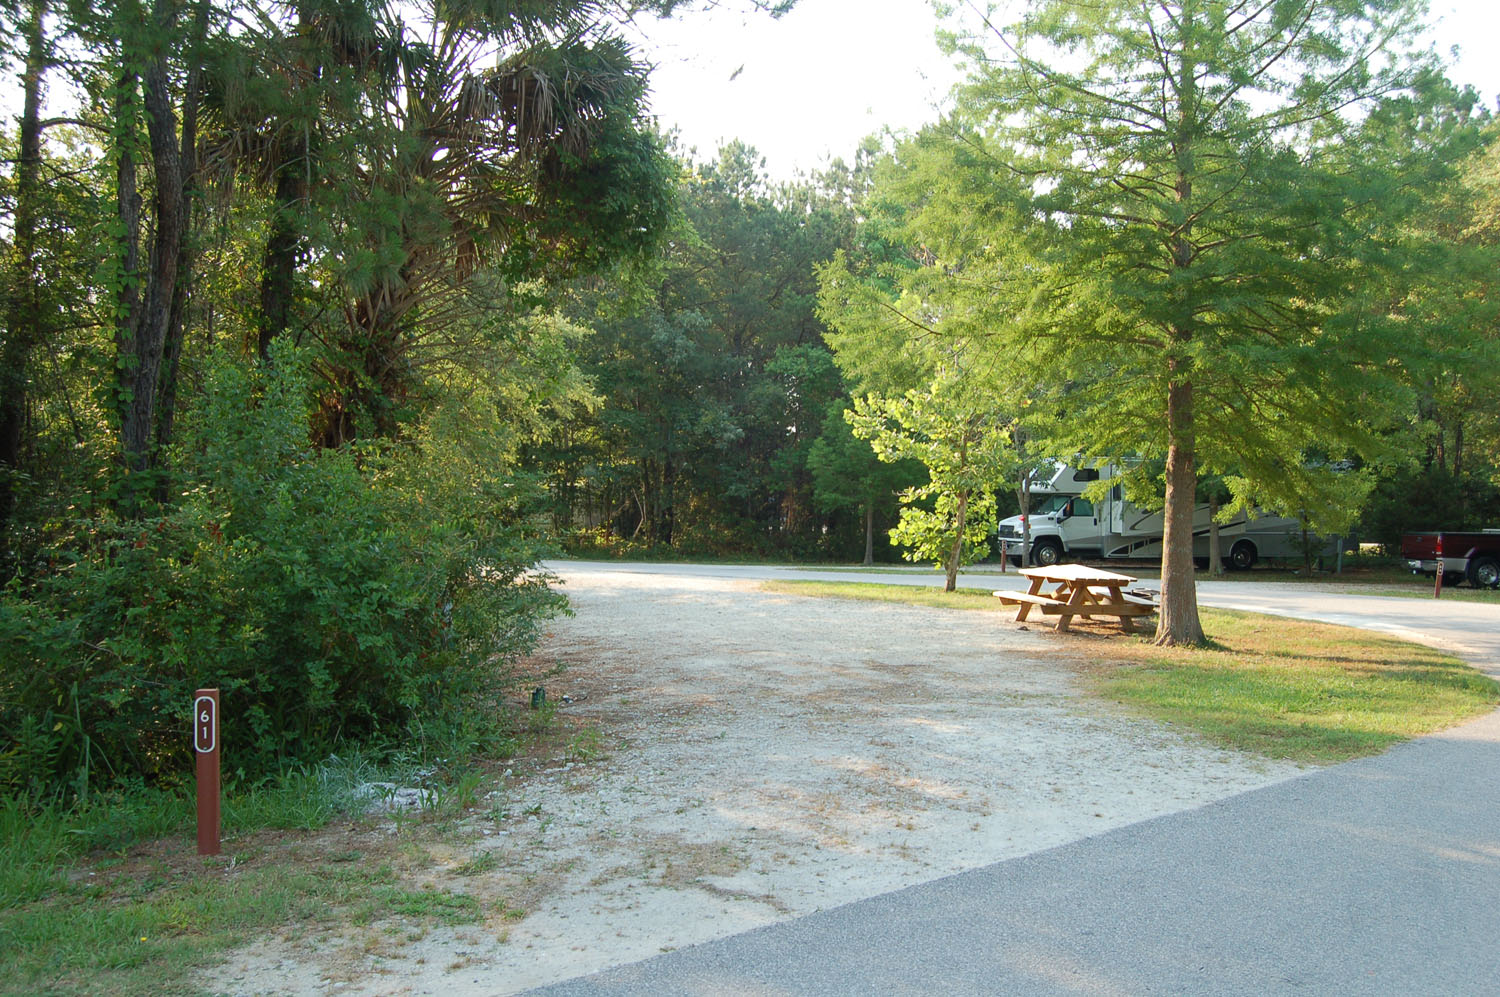 Image of campsite #61 at the Campground at James Island County Park